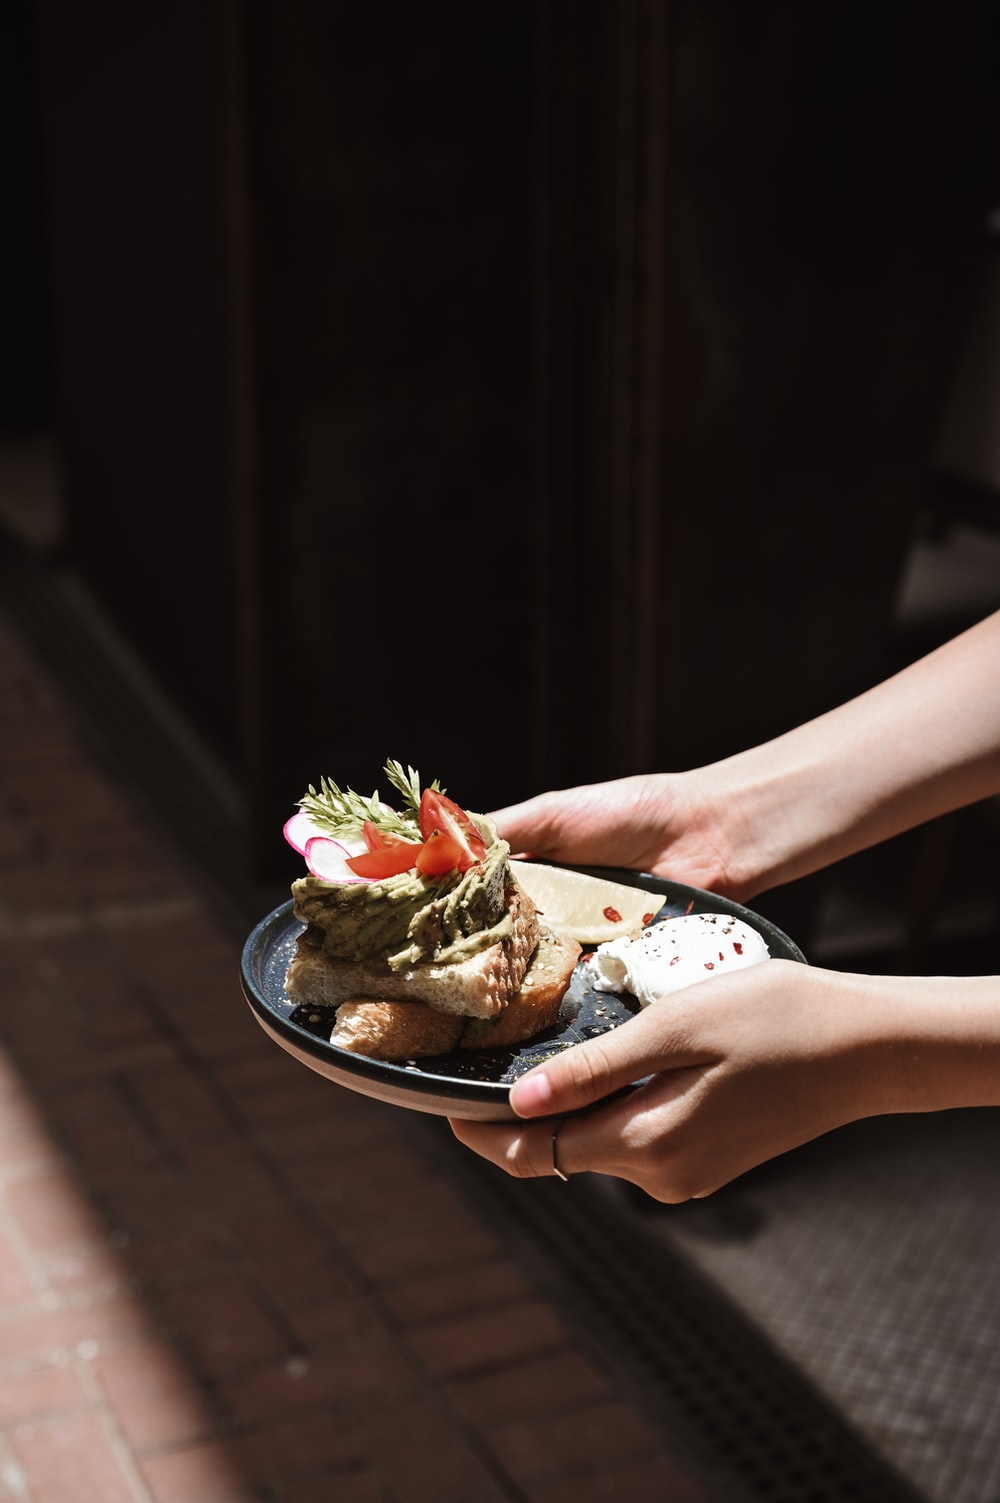 person holding a white ceramic bowl with food